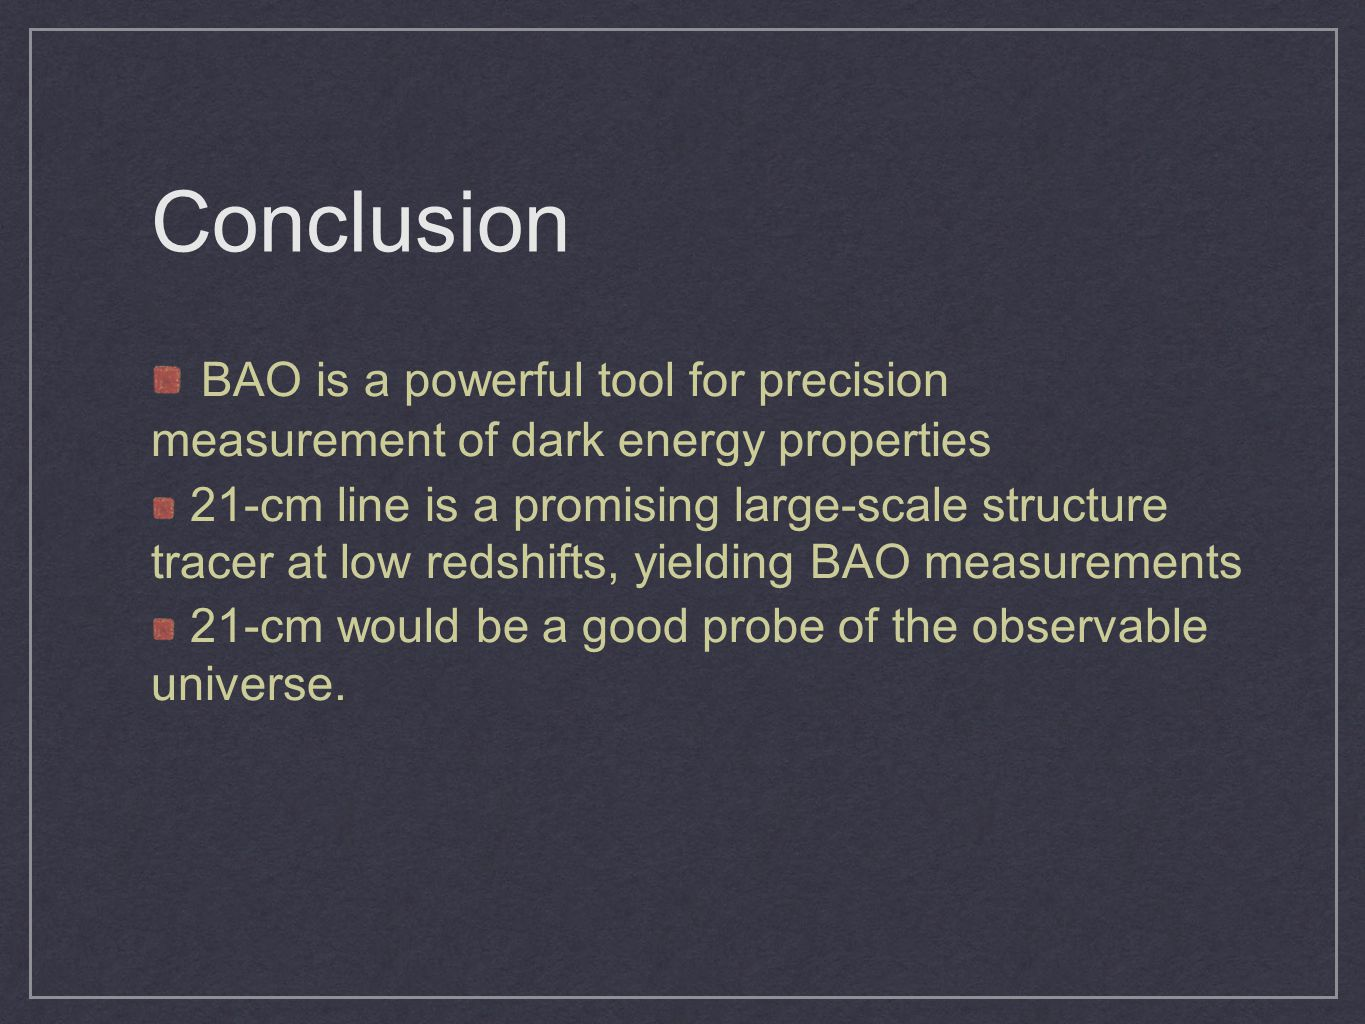 Conclusion BAO is a powerful tool for precision measurement of dark energy properties.